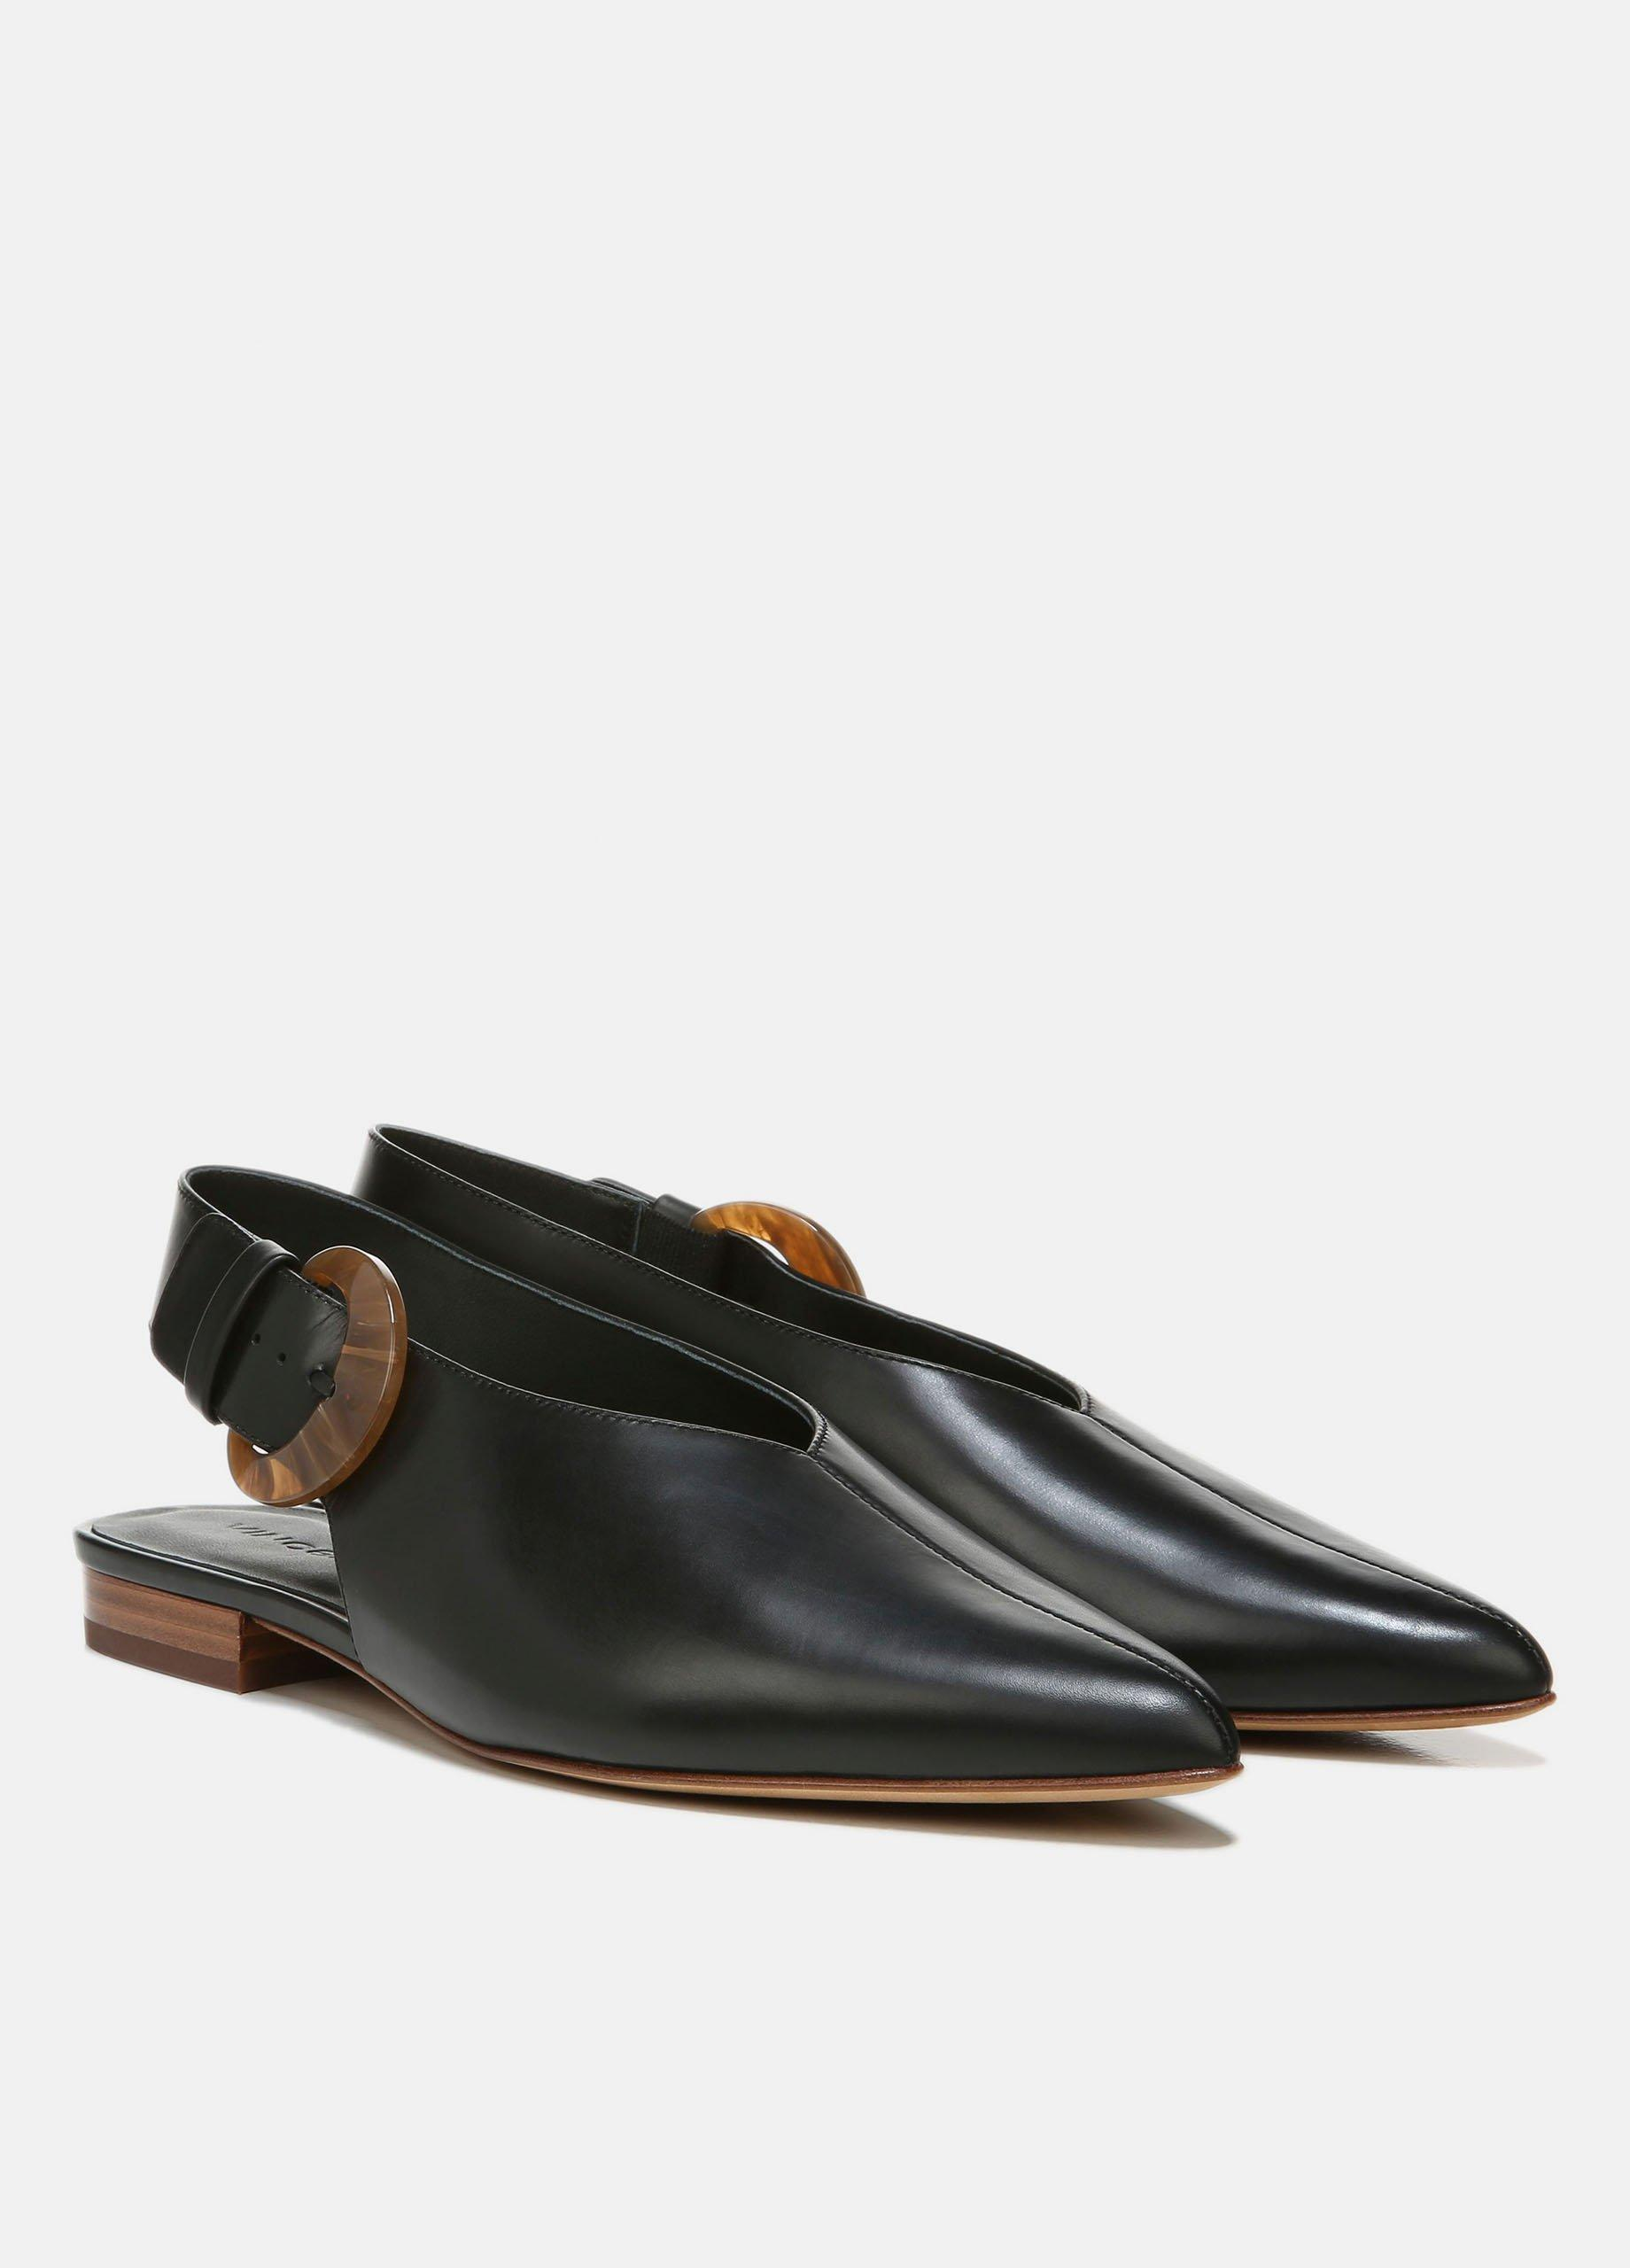 Cecily Leather Buckle Shoe